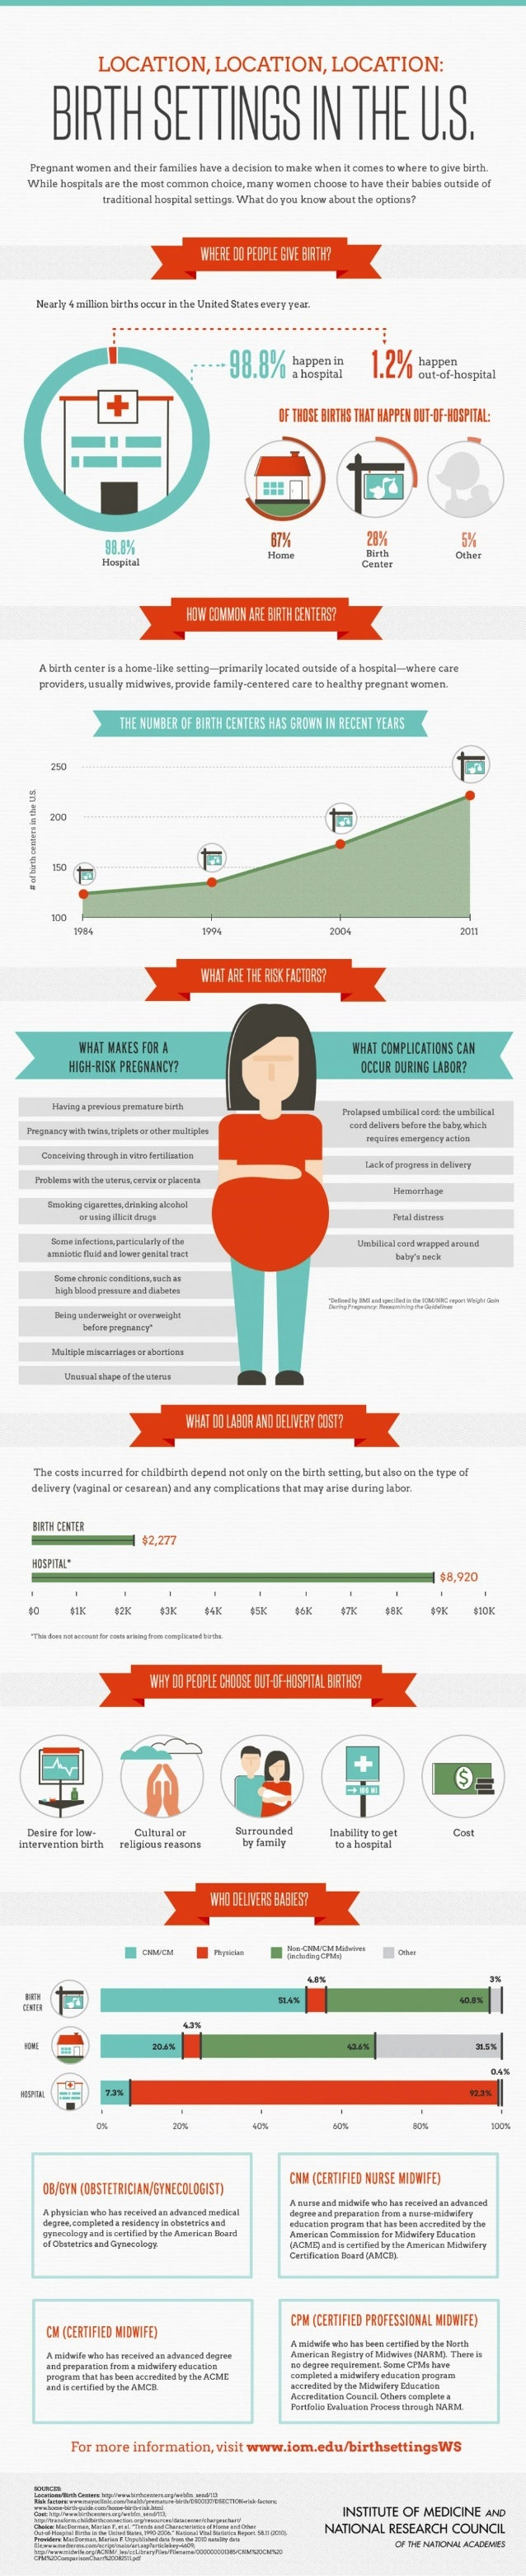 Locations for Birth Settings in the U.S. Infographic